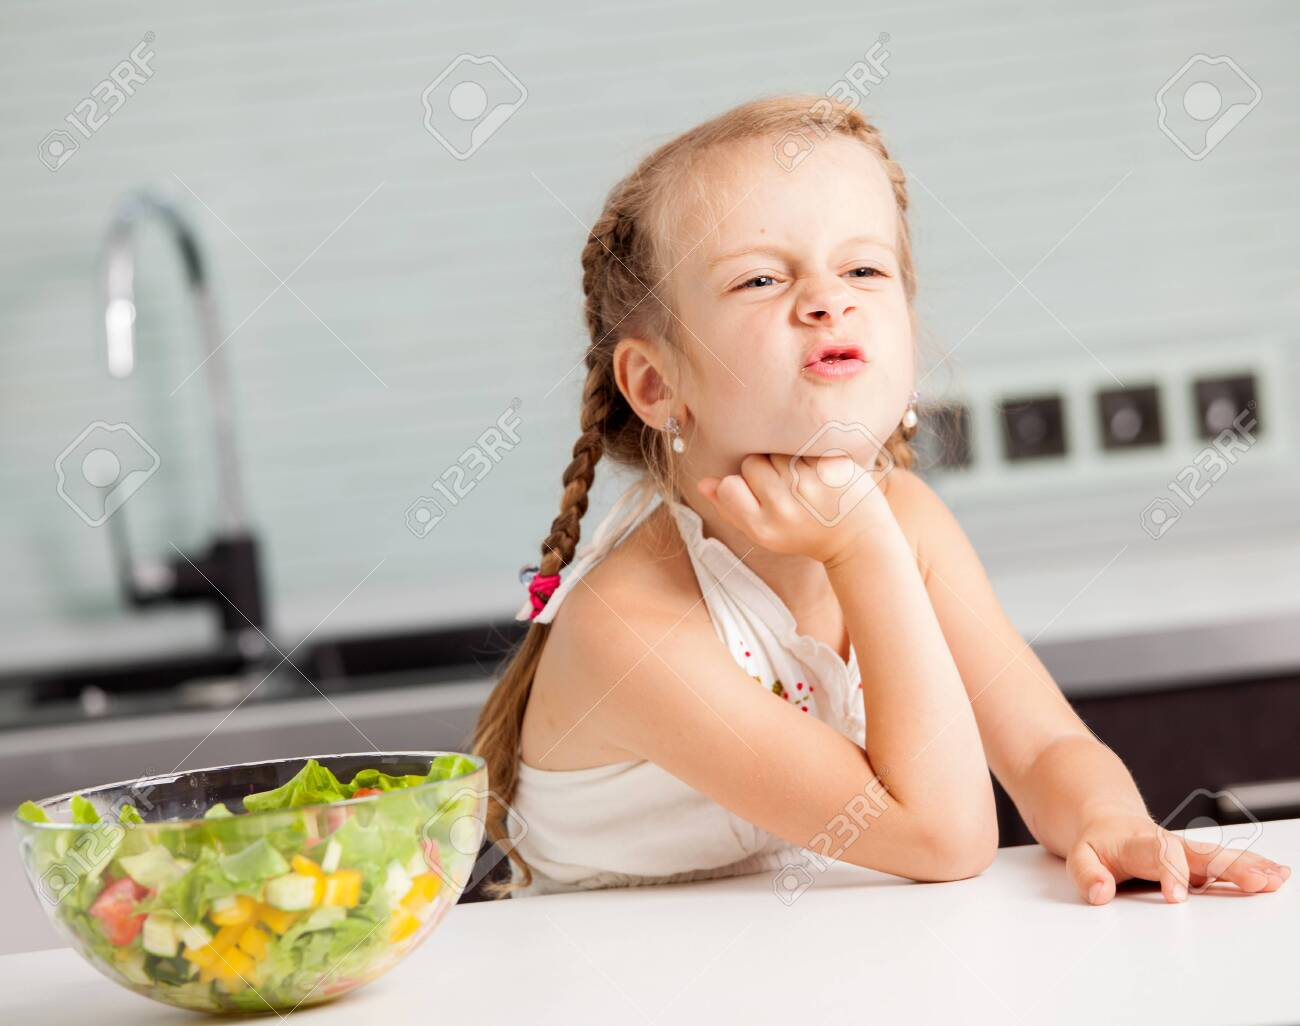 Little girl refuses to eat salad. Child looks with disgust for food - 144132026